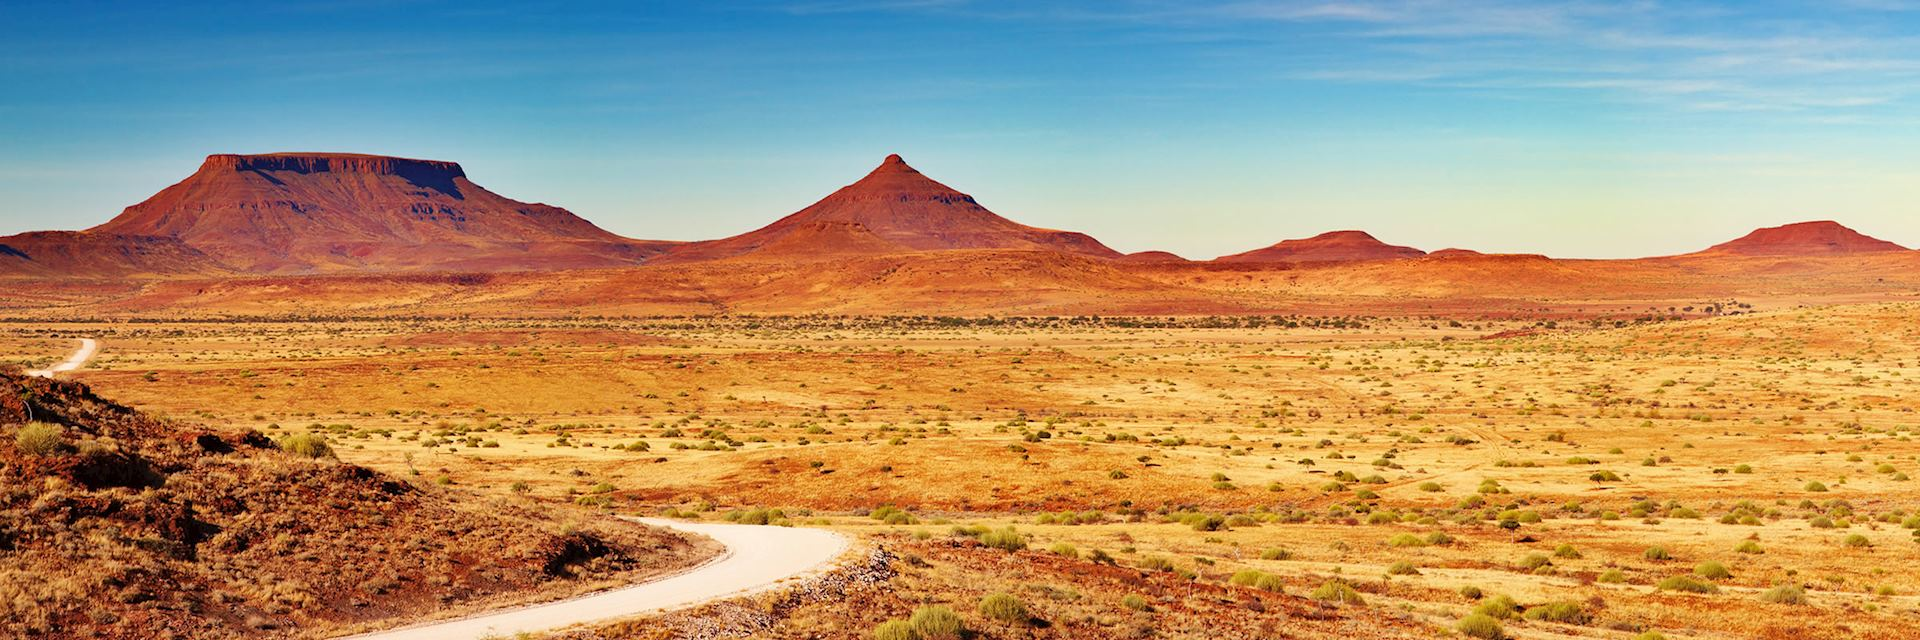 Damaraland in the largely unpopulated north-central part of Namibia